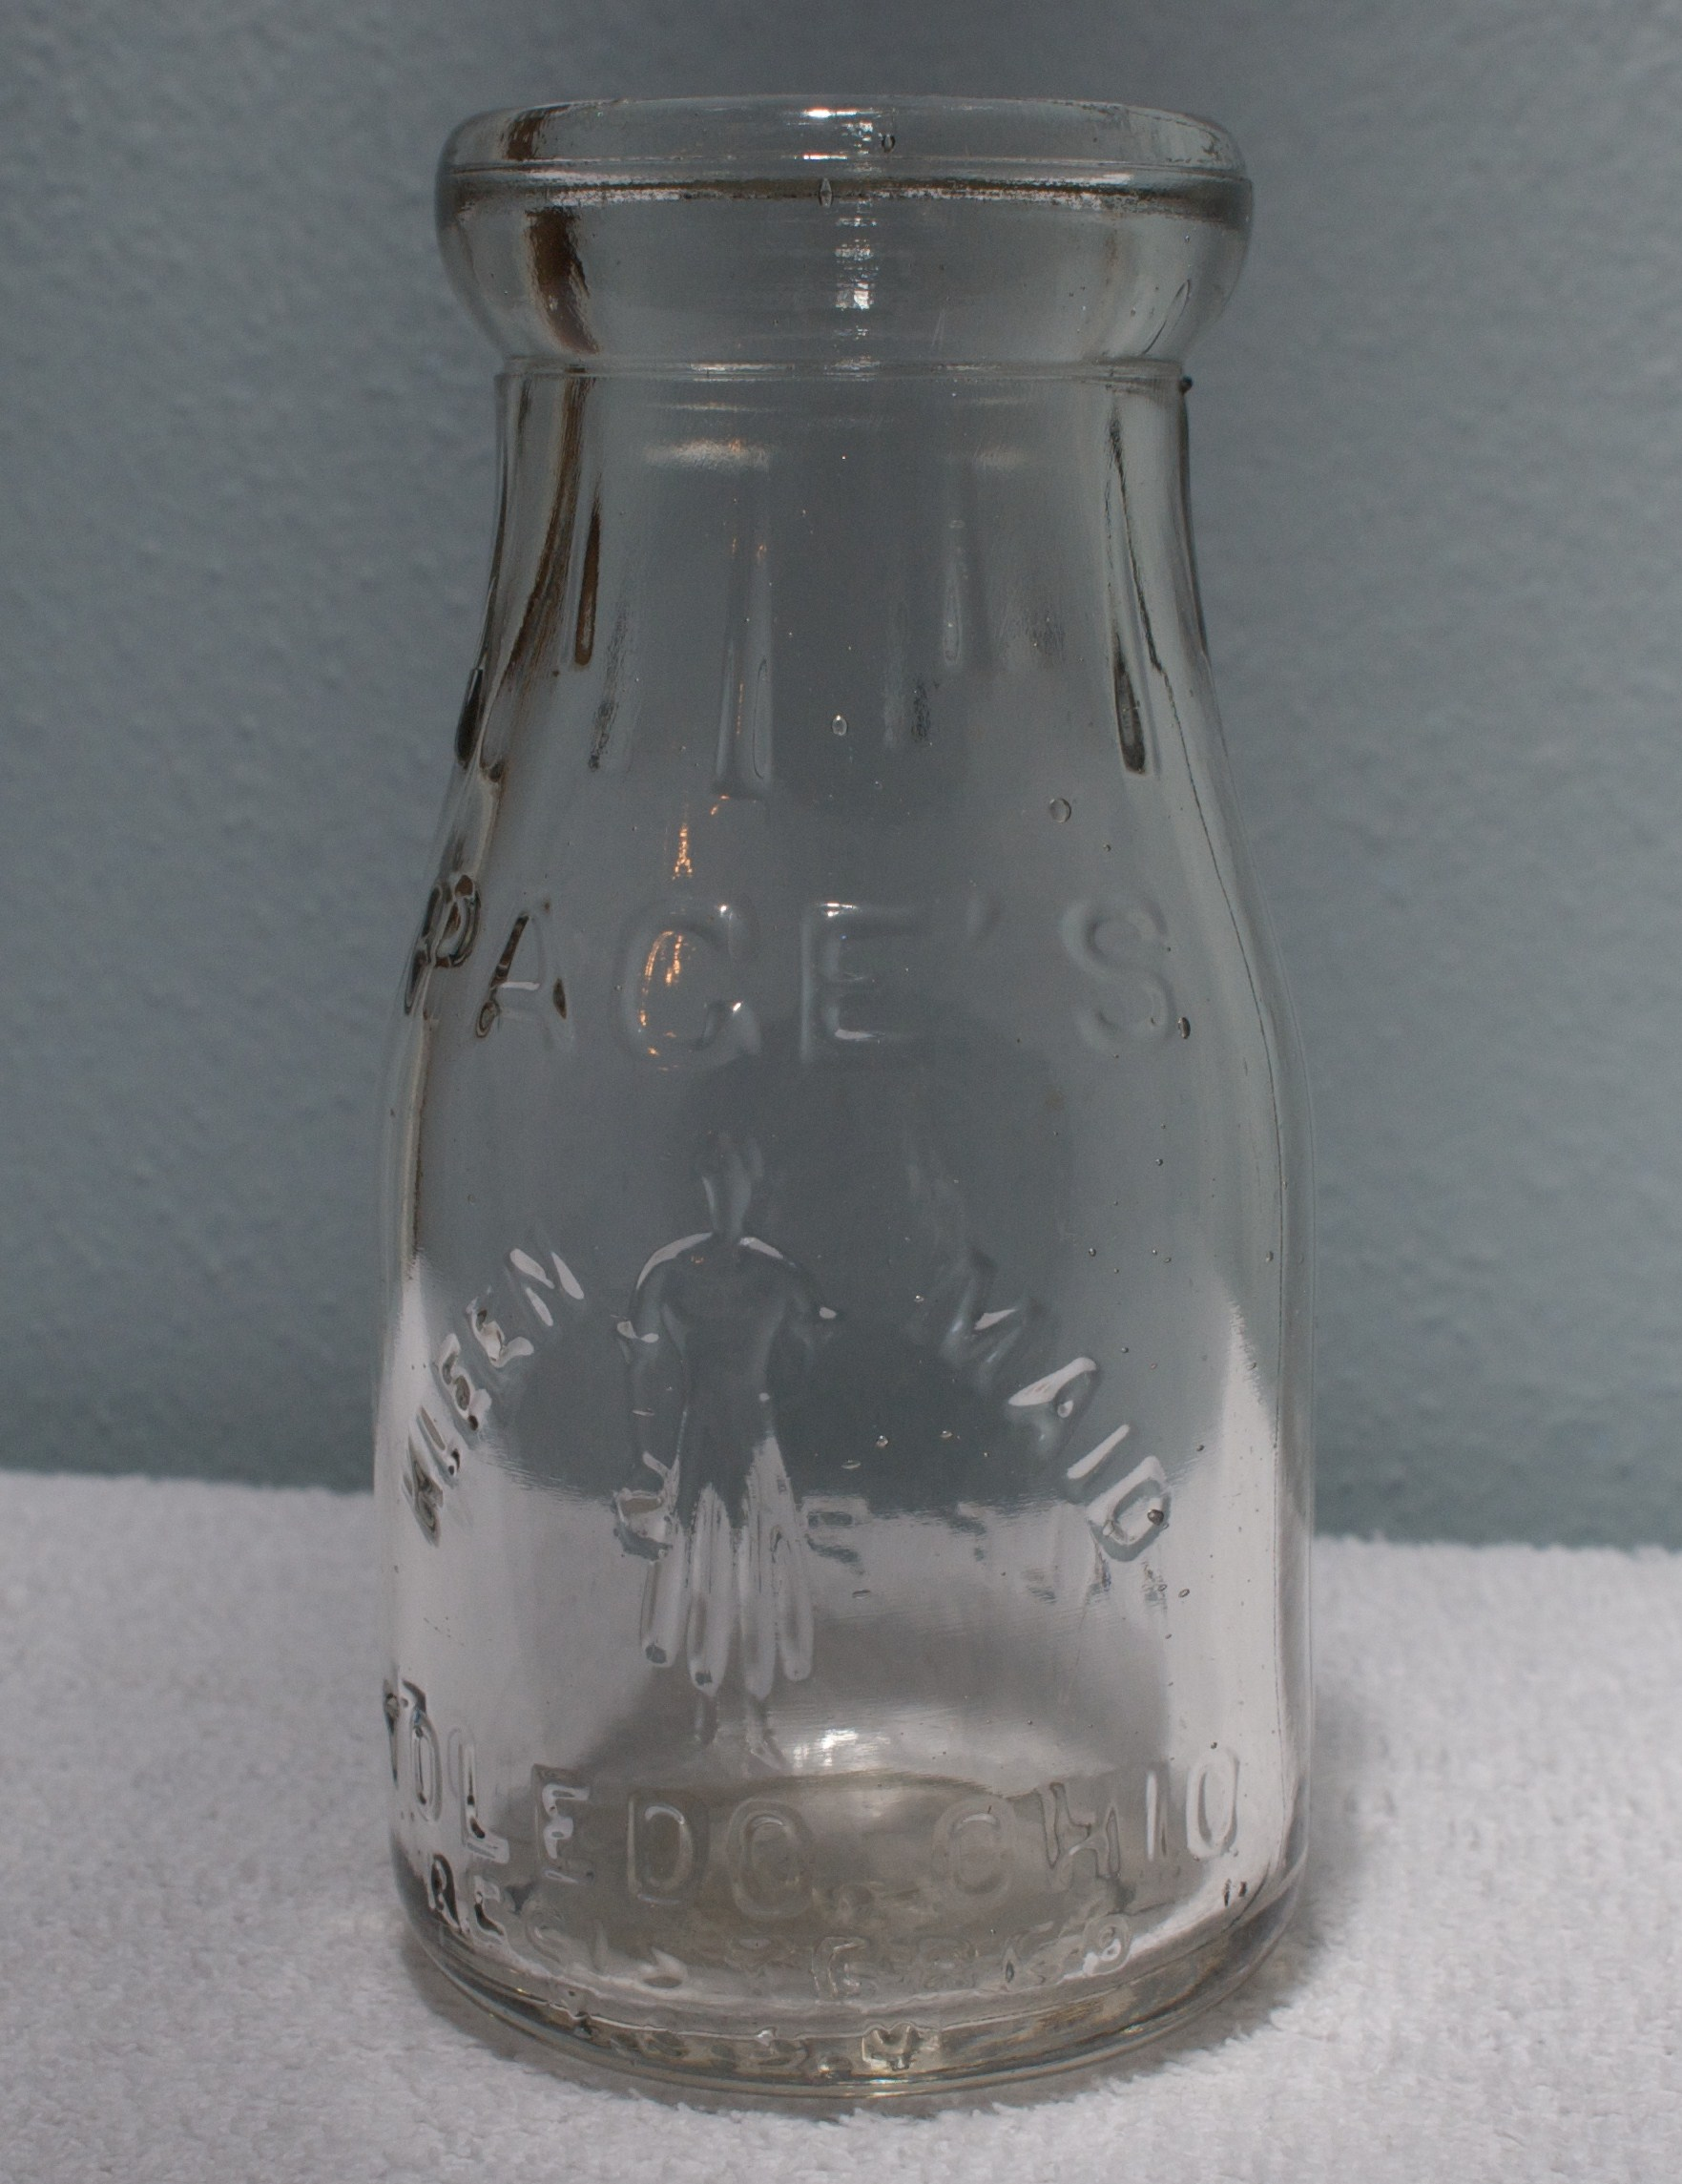 Embossed Pages Kleen-Maid Half Pint Milk Bottle 1920s